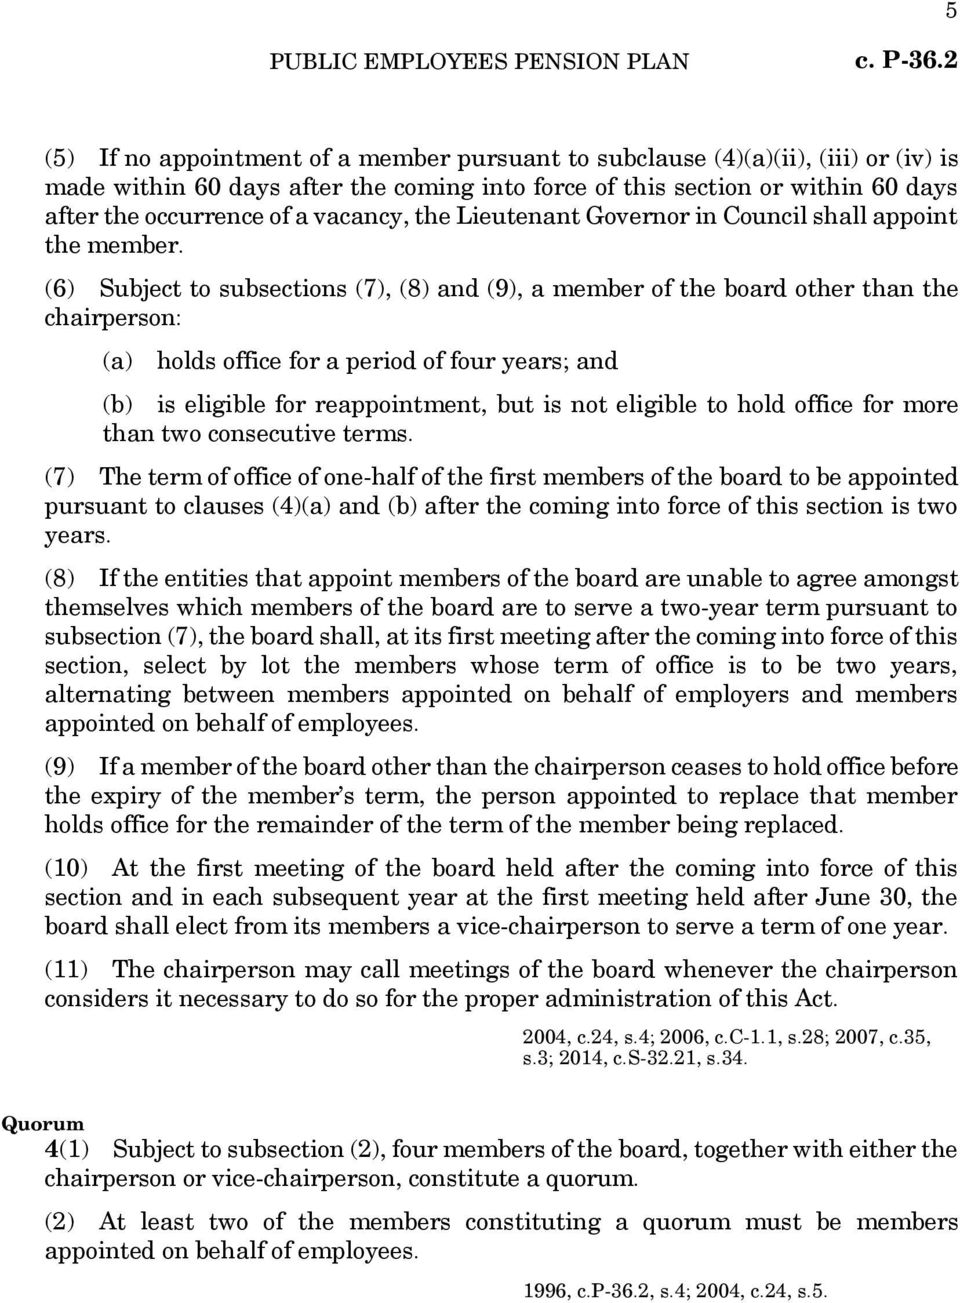 (6) Subject to subsections (7), (8) and (9), a member of the board other than the chairperson: (a) holds office for a period of four years; and (b) is eligible for reappointment, but is not eligible